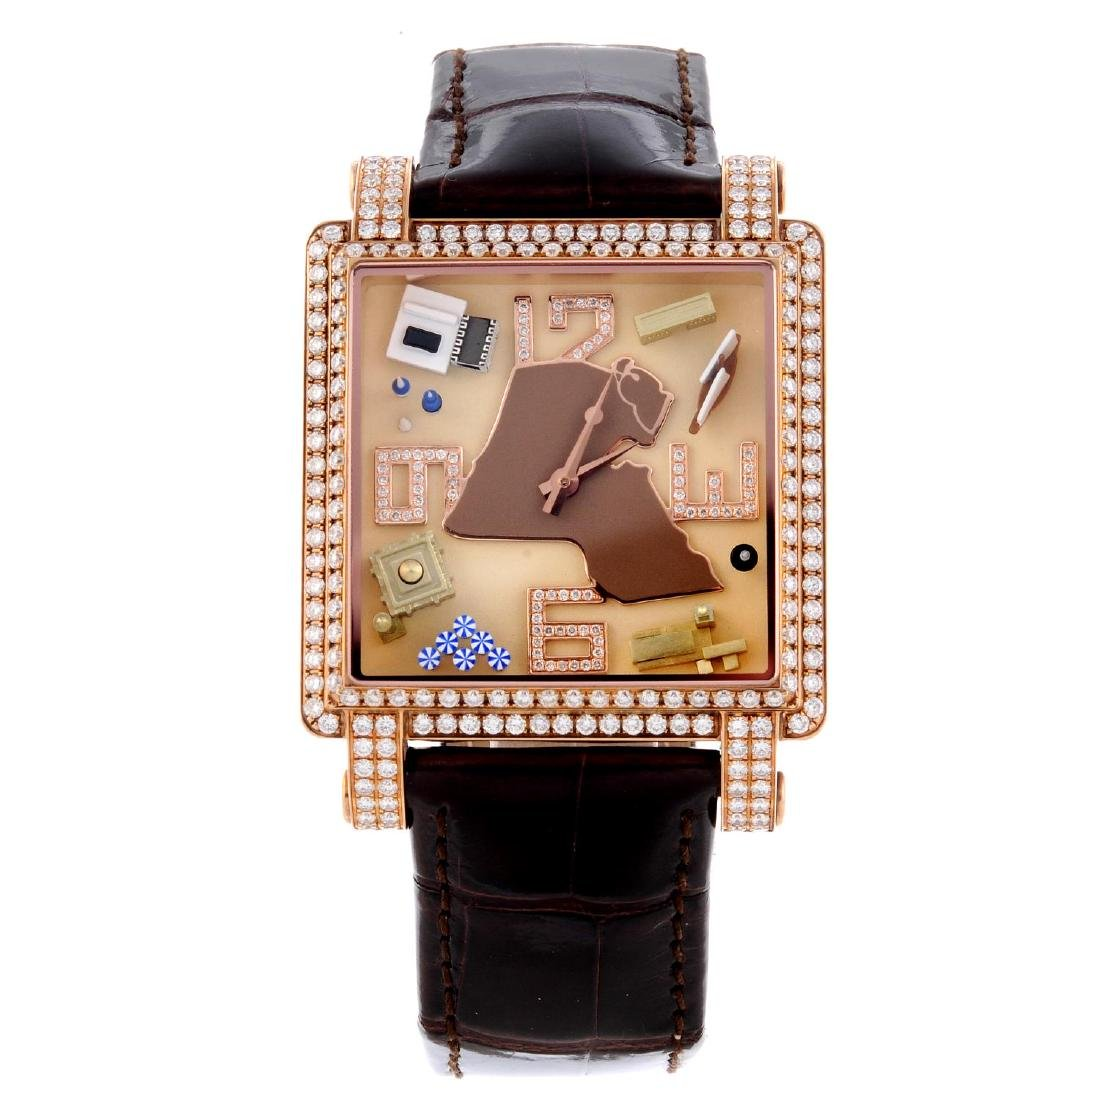 JACOB & CO. - a limited edition gentleman's Kuwait